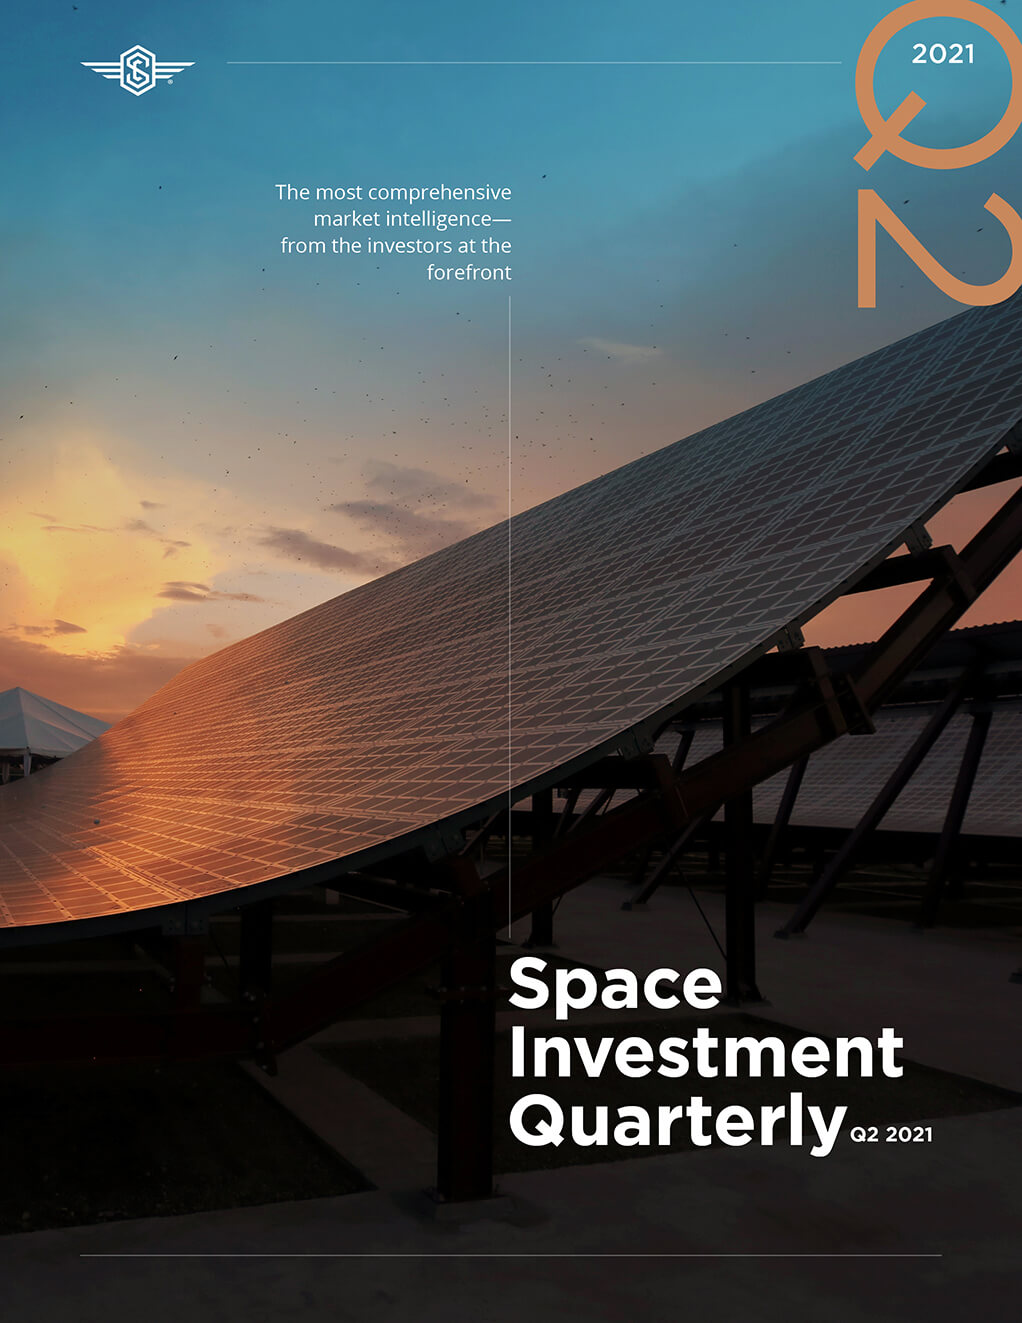 Space Investment Quarterly Report